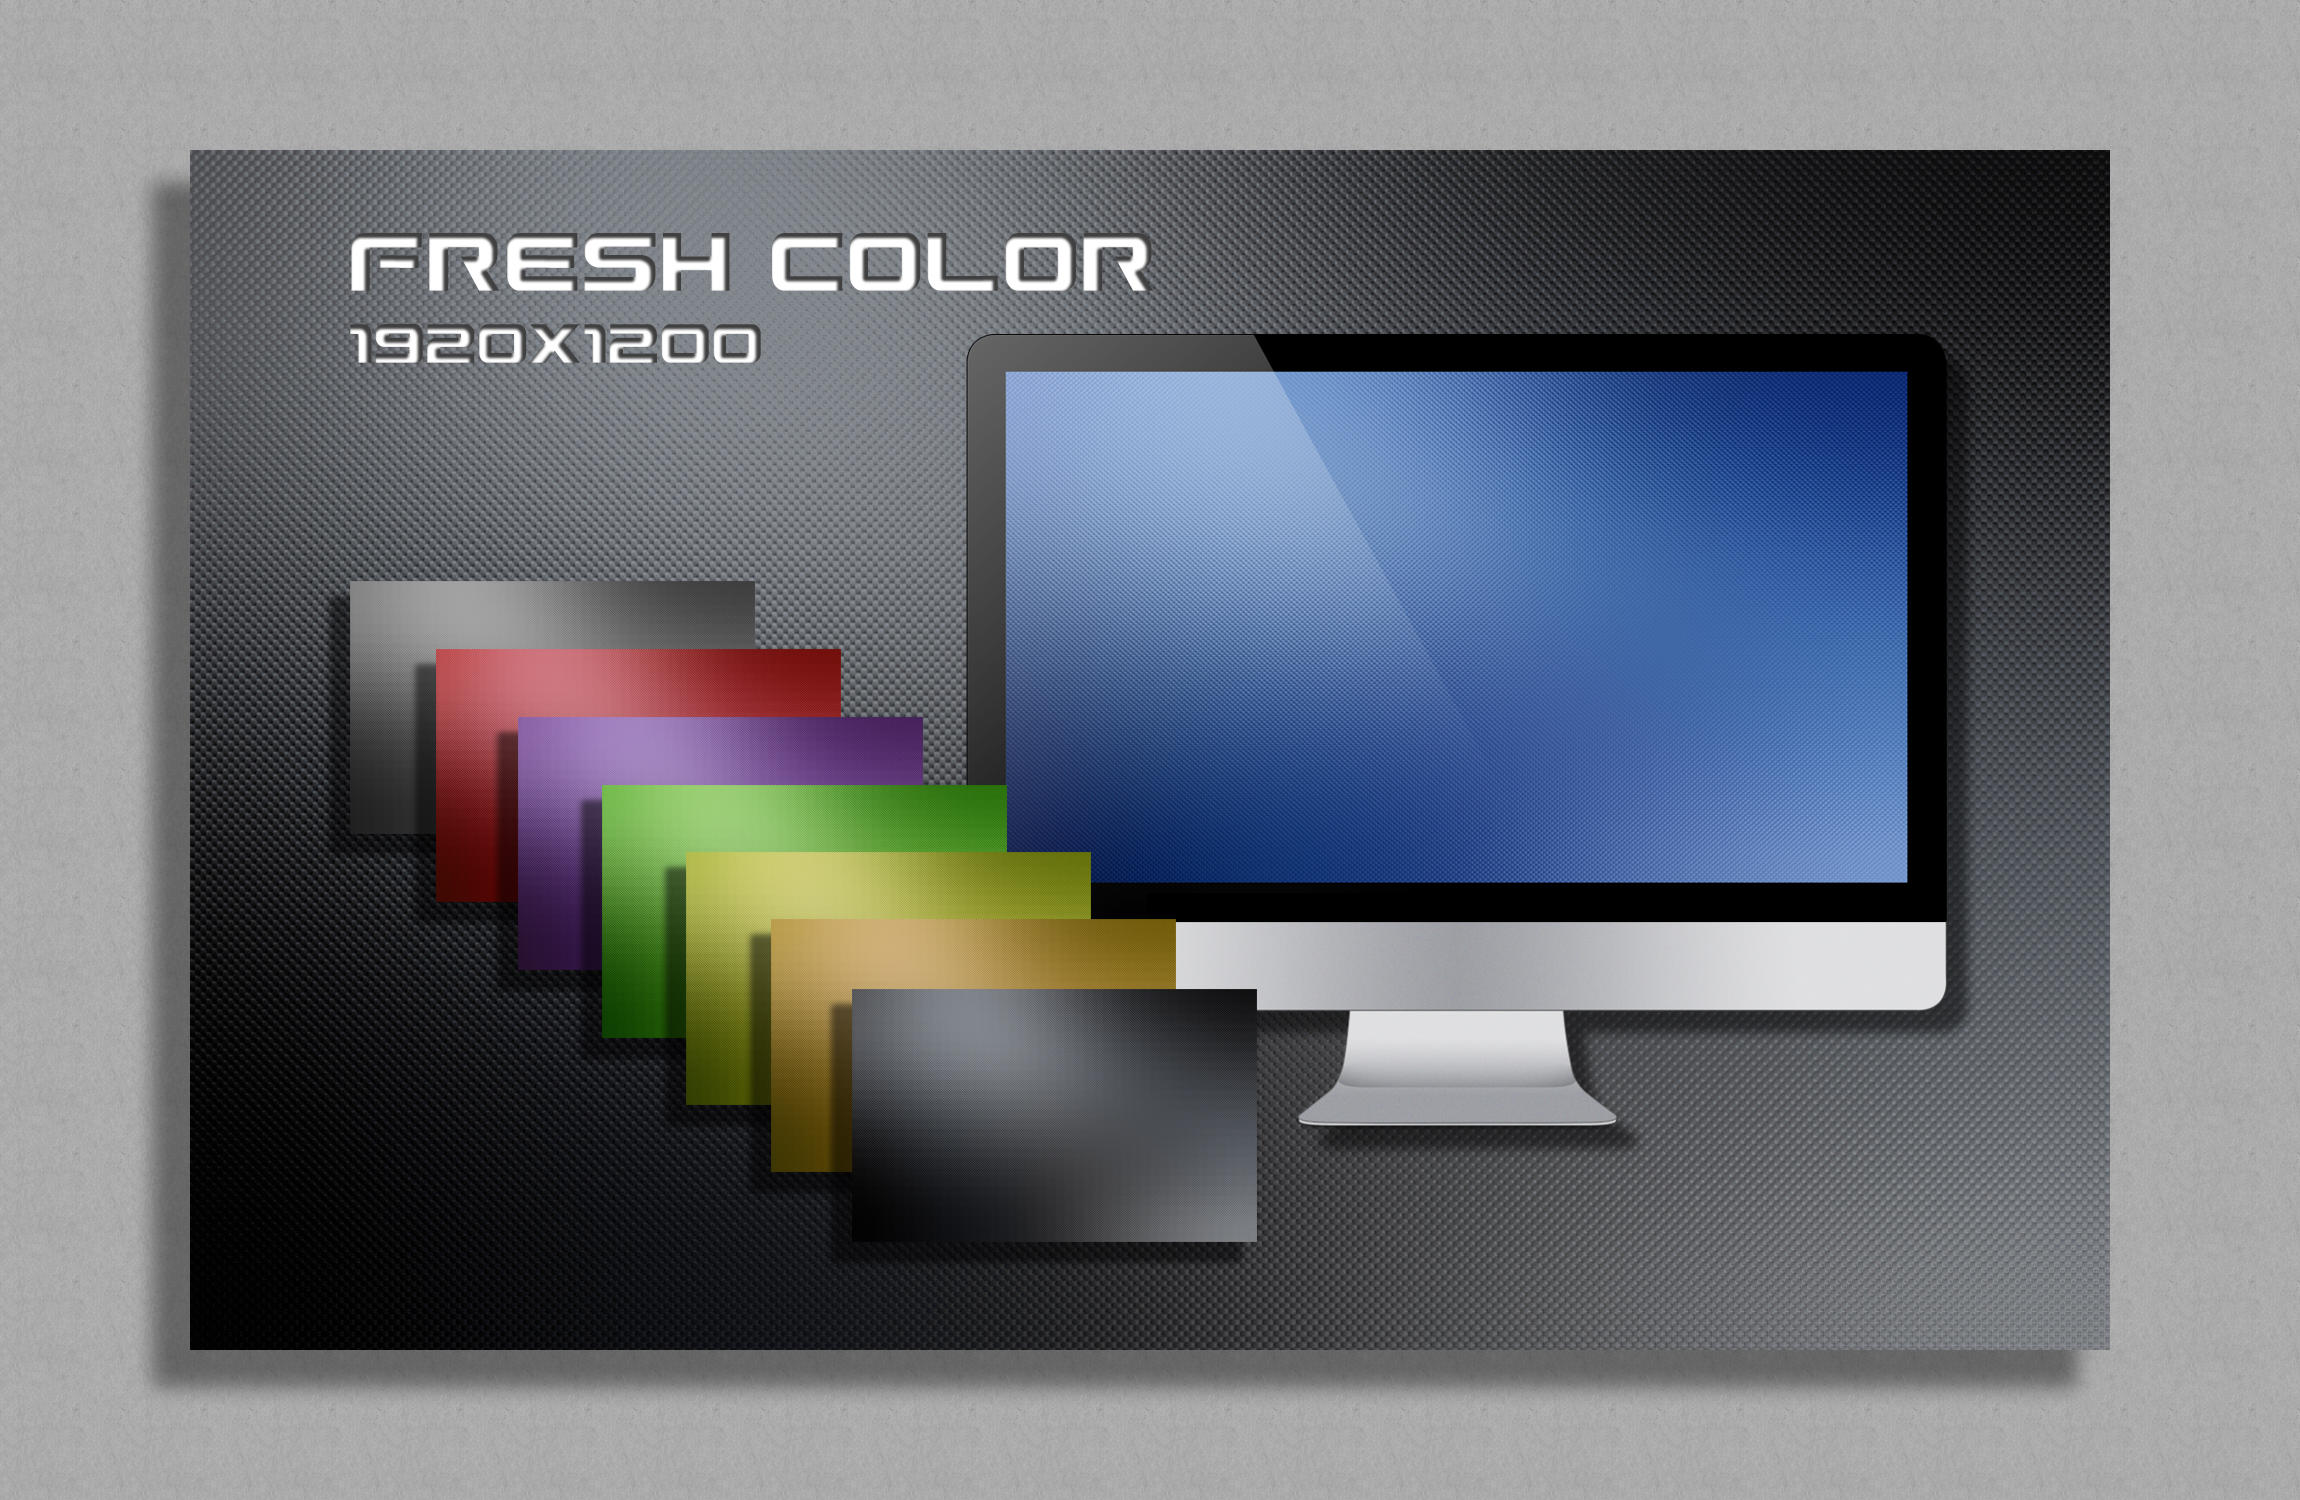 Fresh Color Wallpaper Pack by vanessaem